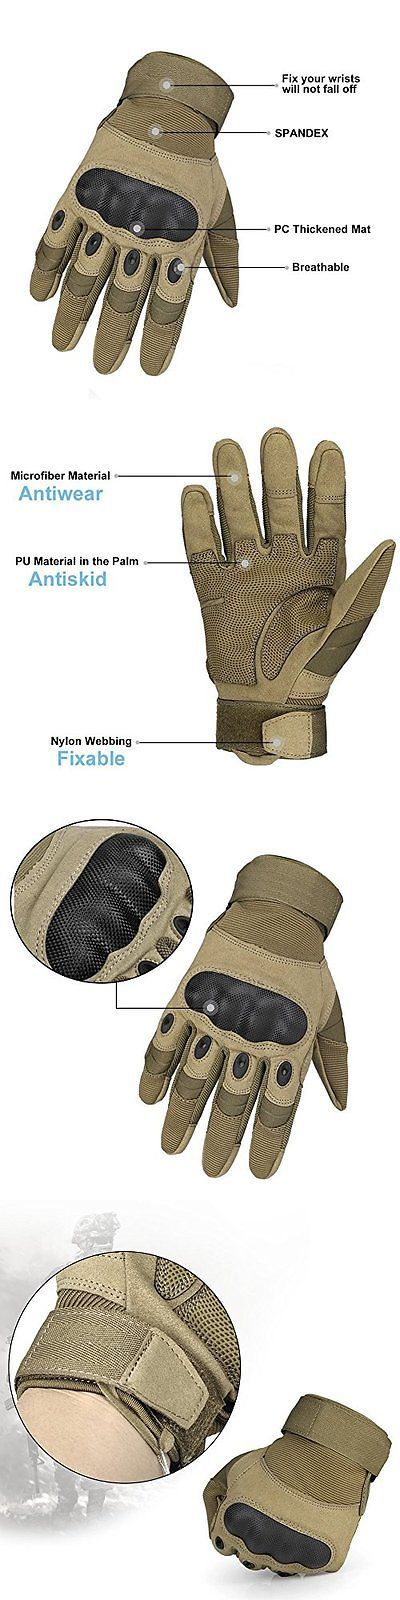 Tactical Gloves 177898: Bestoo 1 Wear Resistant Military Equipment Full Finger Tactical Gloves Airsoft L -> BUY IT NOW ONLY: $73.46 on eBay!